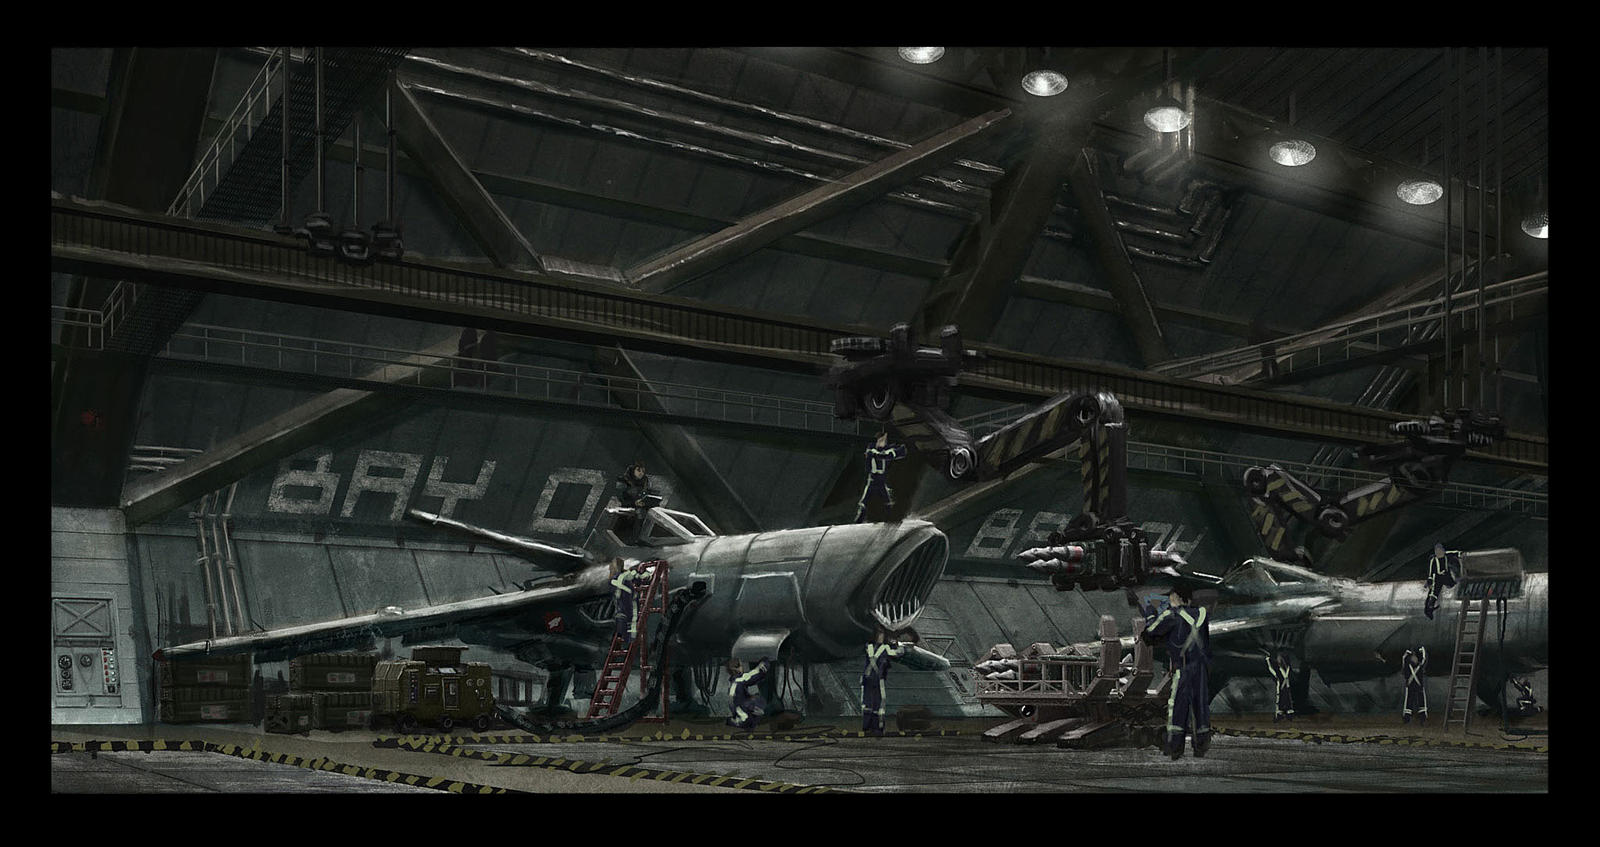 Hangar bay concept by philzero